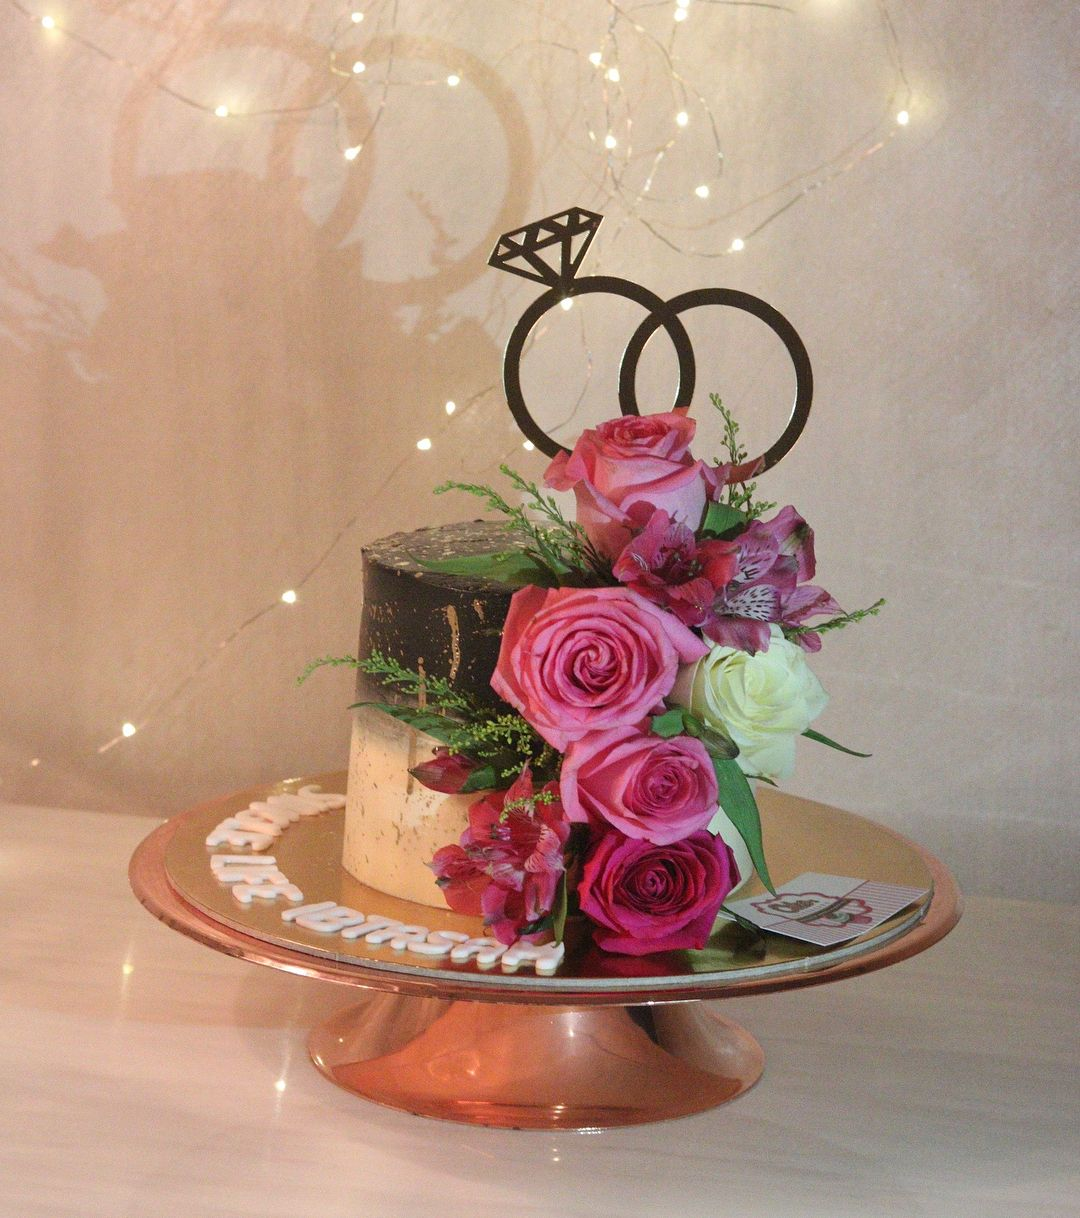 Pin By Eva Barrantes On Flowers Photo Collage Template Wedding Cakes Cake